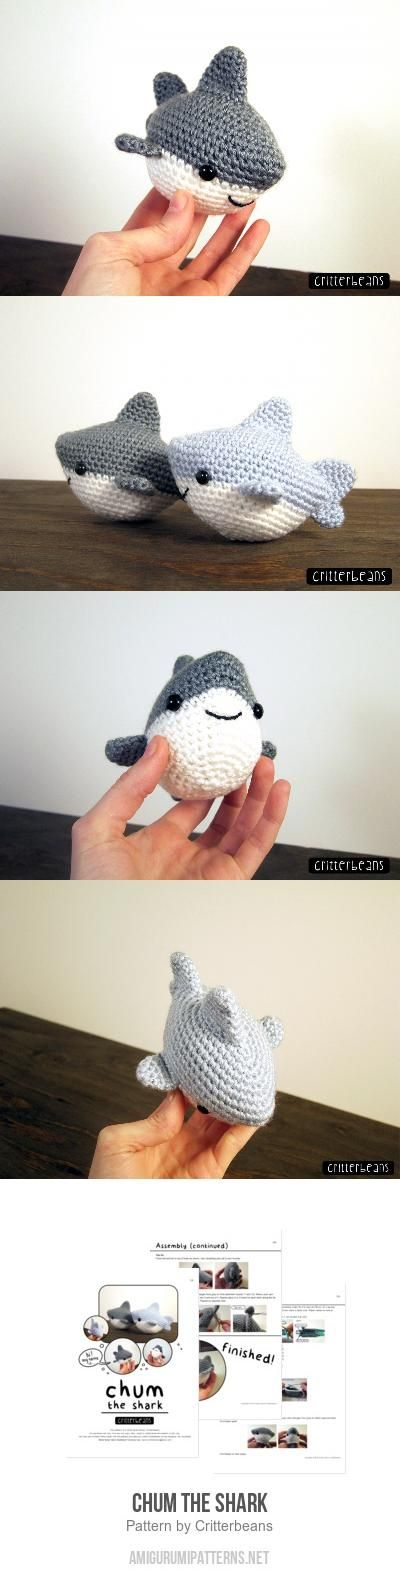 Chum The Shark Amigurumi Pattern on Amigurumi pattern.net-4$: